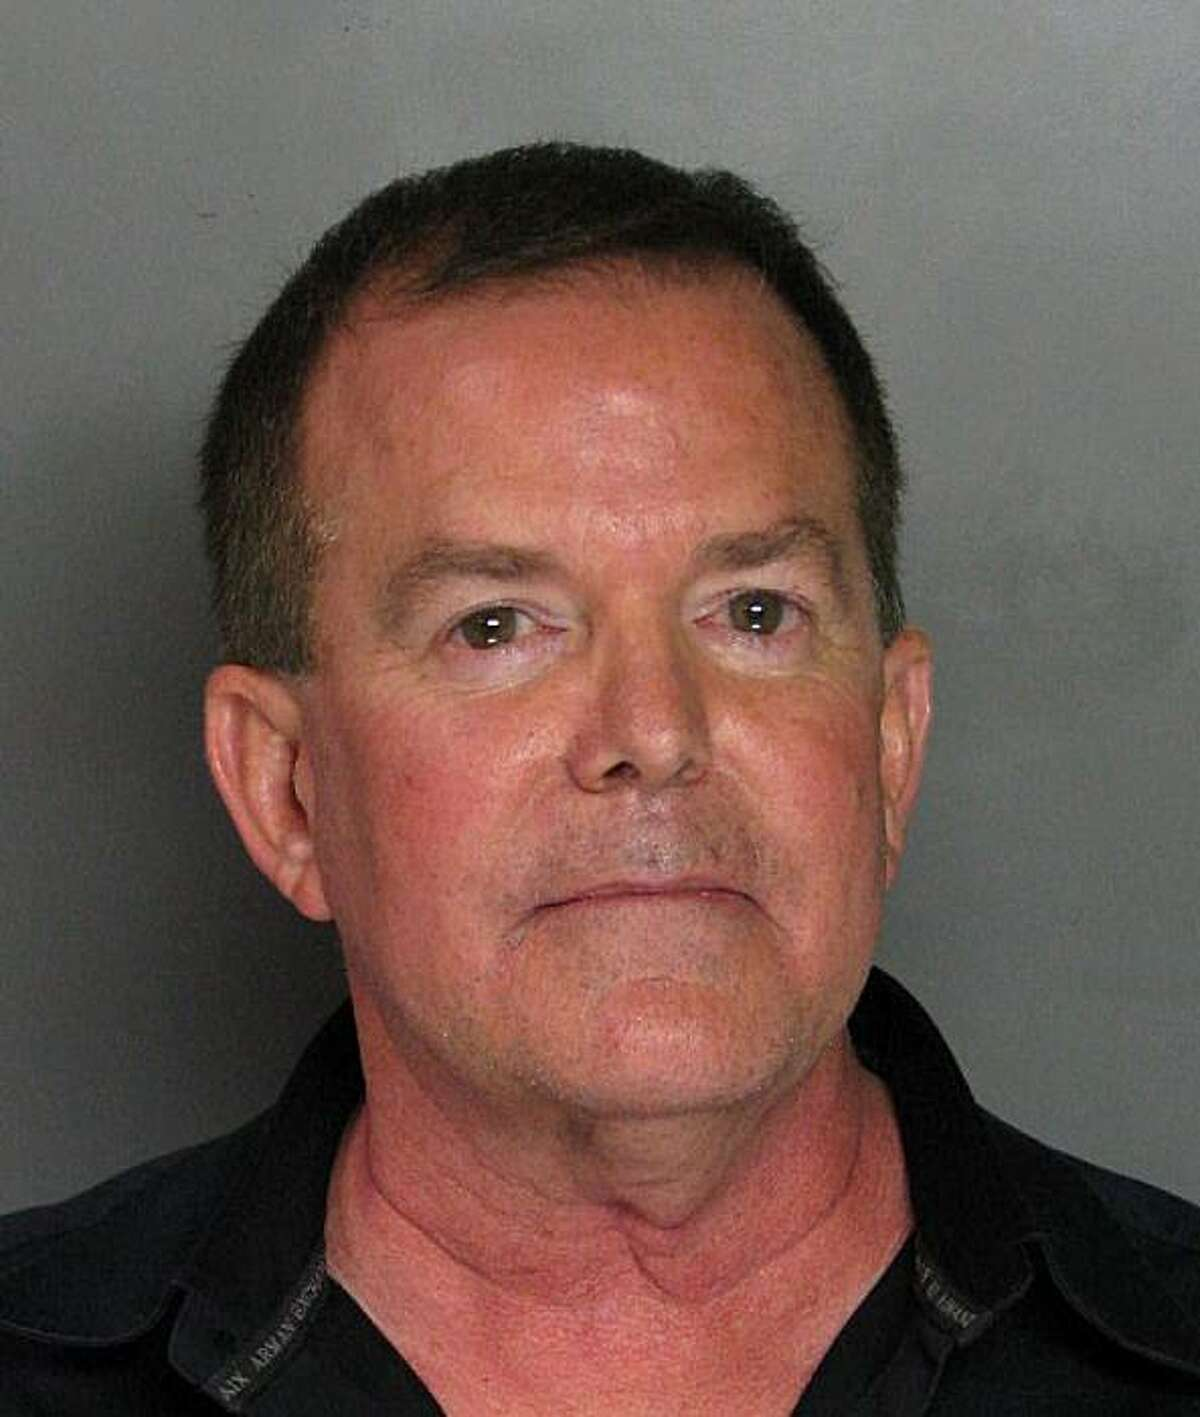 In this photo provided by the Sacramento County Sheriff's Department, state Sen. Roy Ashburn, R-Bakersfield, is seen in this booking photo. California Highway Patrol Lt. Jay Bart says Ashburn was spotted driving erratically about 2:10 a.m. Wednesday, March 3, 2010. He was arrested after a sobriety test, taken to Sacramento County Jail, given a blood alcohol test, booked and released.